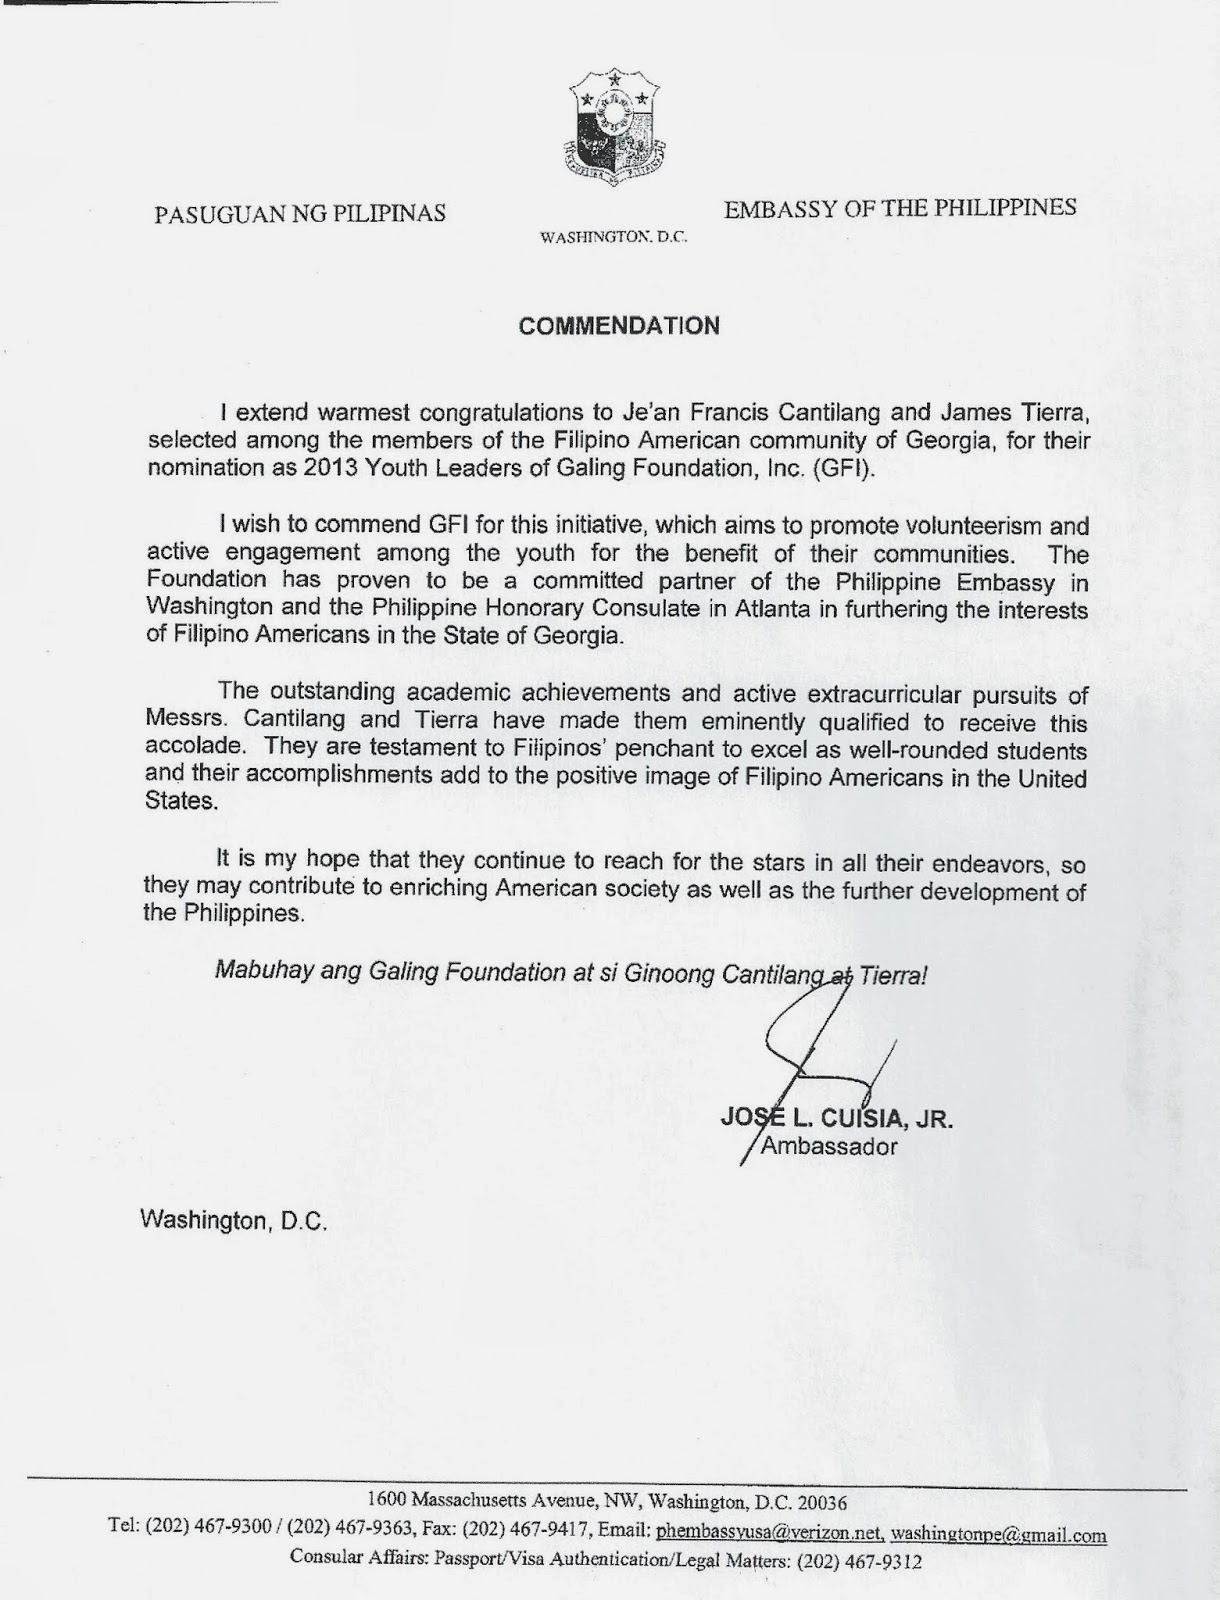 Galing Great News Letter of mendation by H E Jose L Cuisia